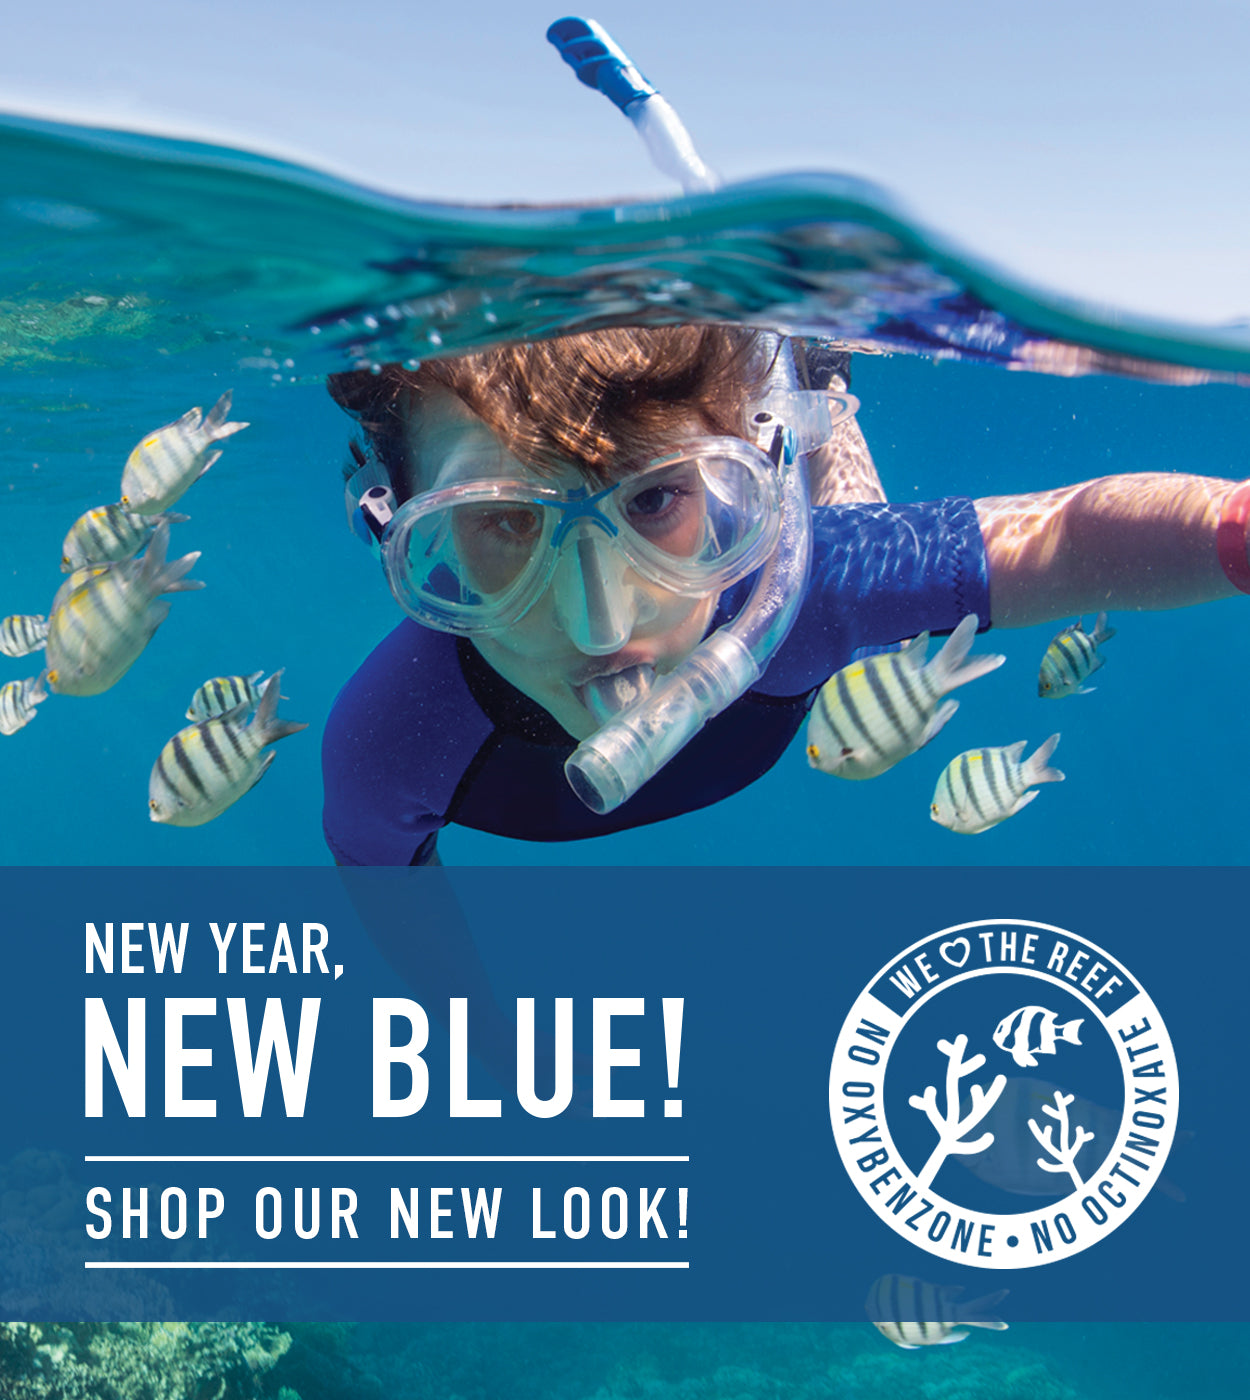 New Year, New Blue! Shop our new look!